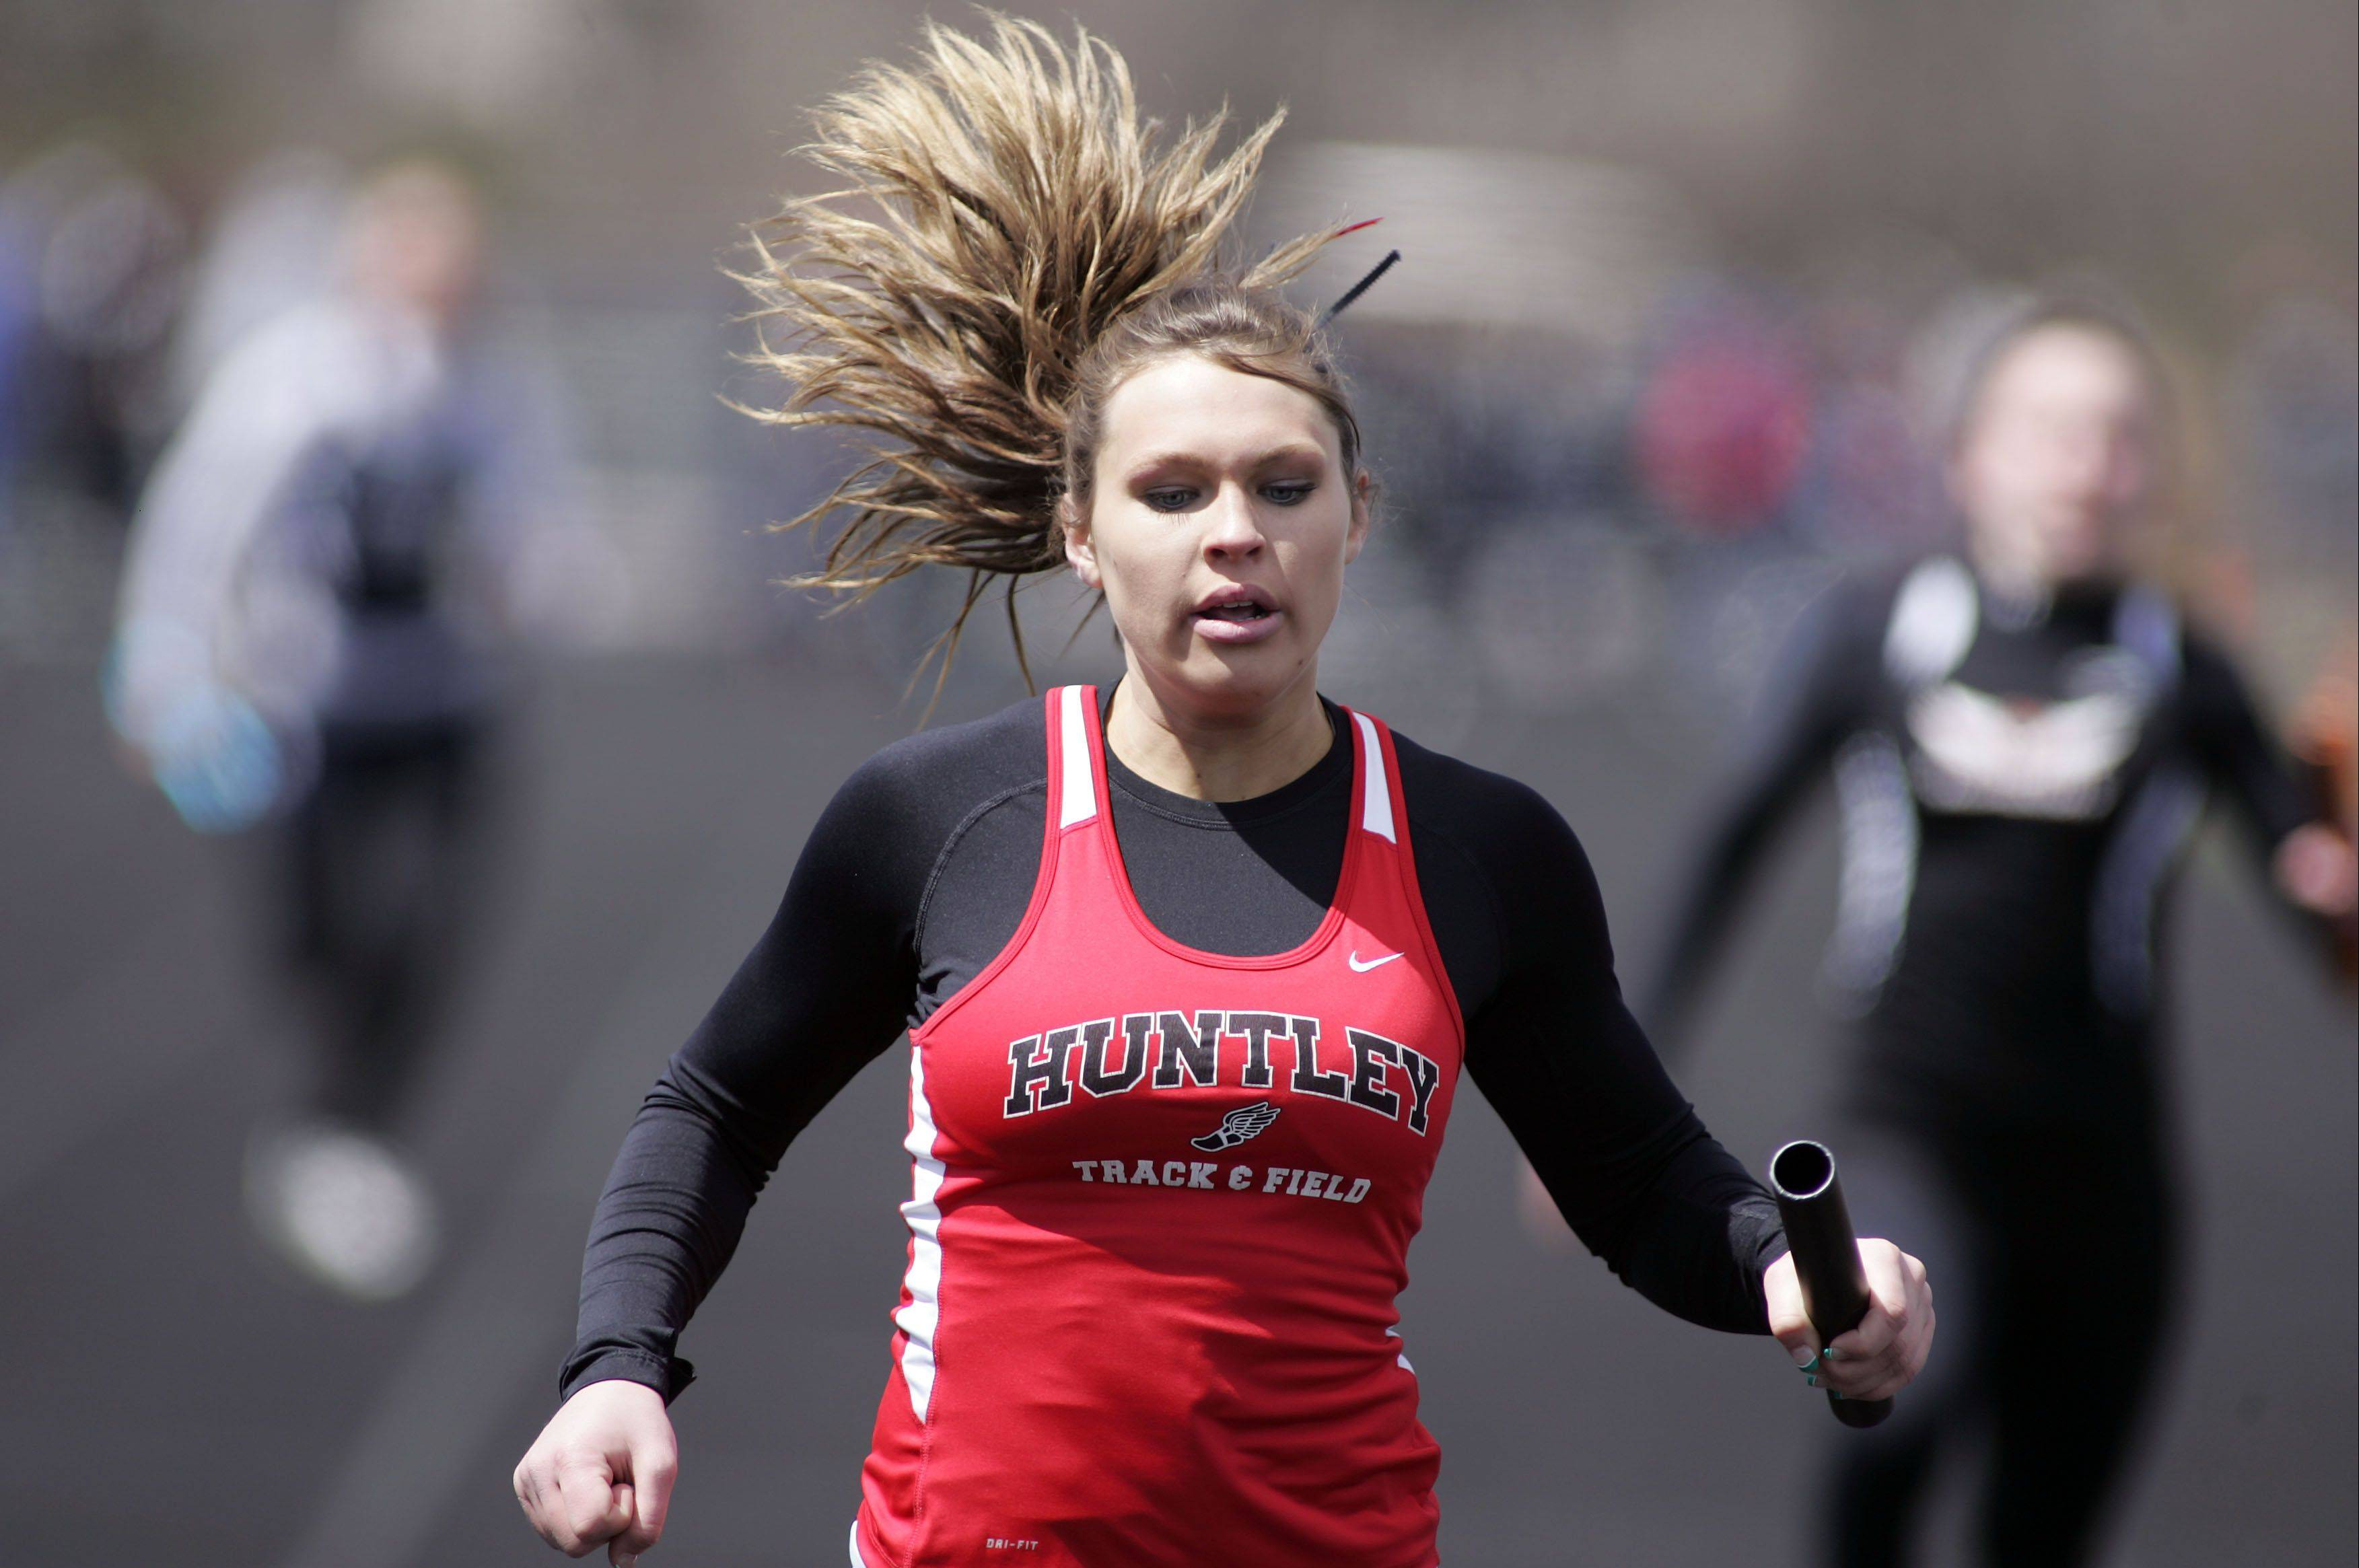 single women in huntley Joel popenfoose enters his fifth season as head coach of the men's & women's track and 9 years at huntley the second-highest single game.